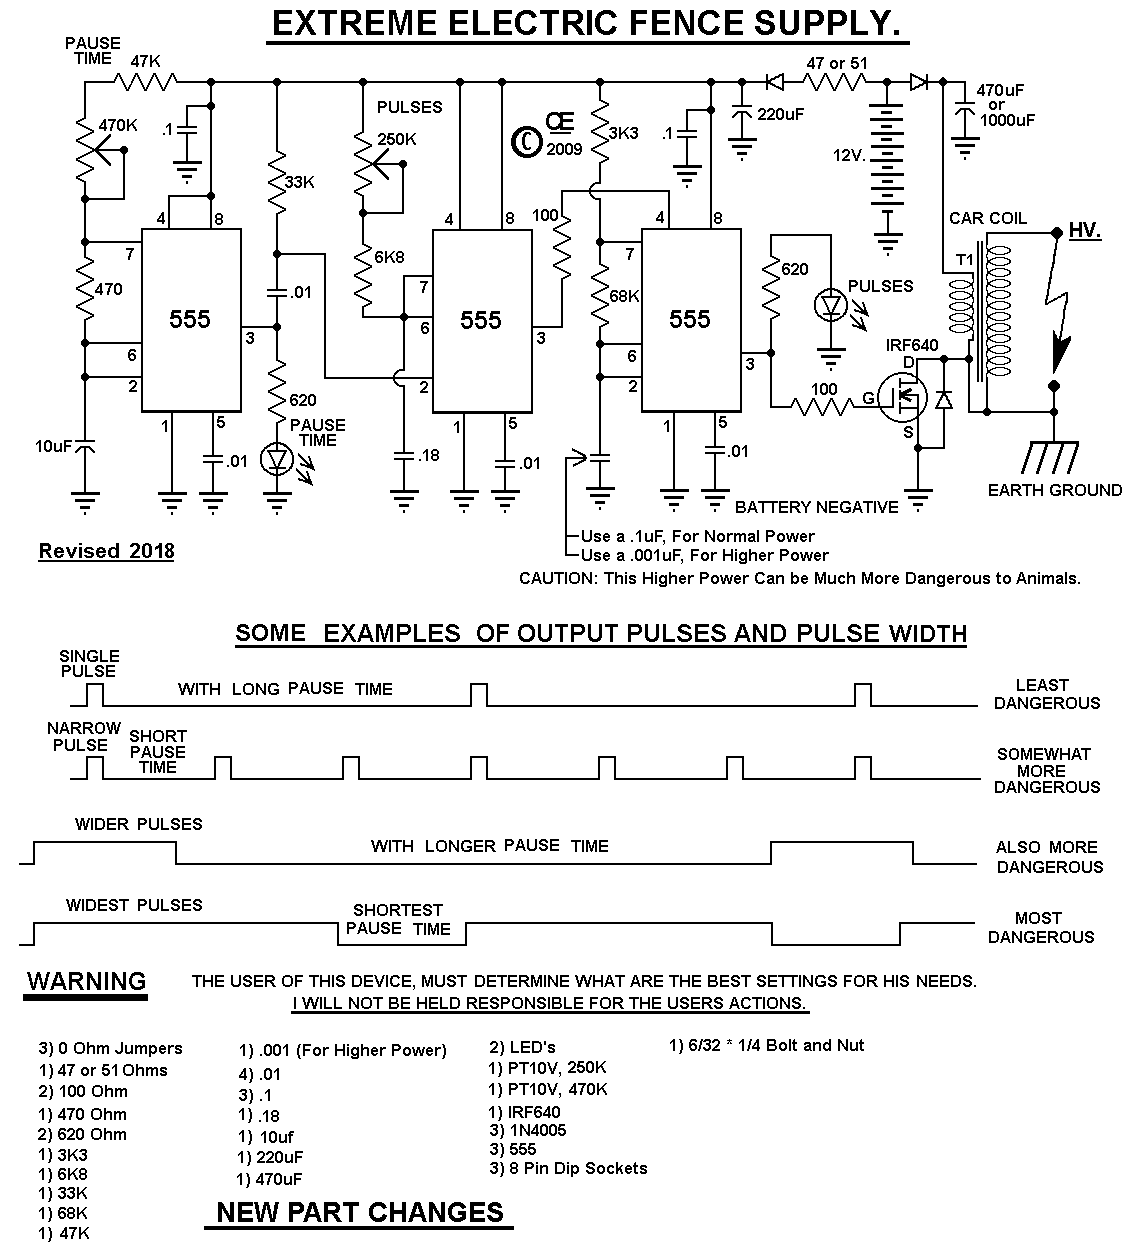 hight resolution of electric fence schematic wiring diagram show electric fence hotter more powerful design electric fence